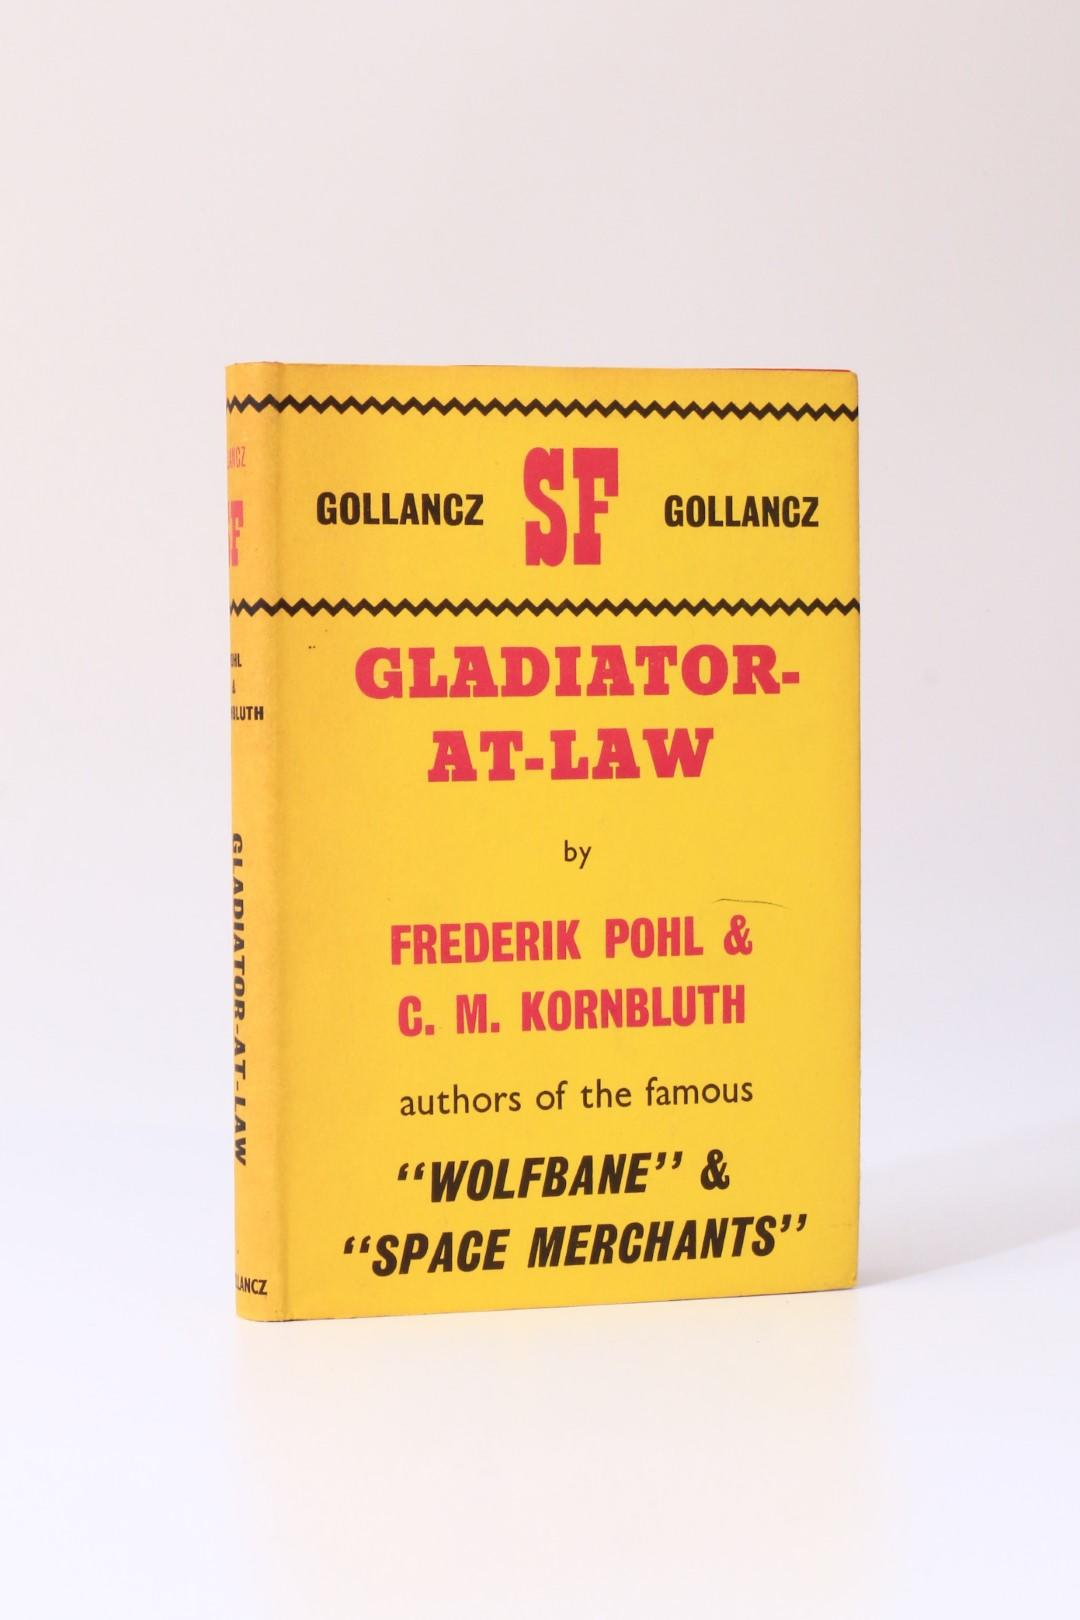 Frederik Pohl & C.M. Kornbluth - Gladiator-At-Law - Gollancz, 1964, Signed First Edition.